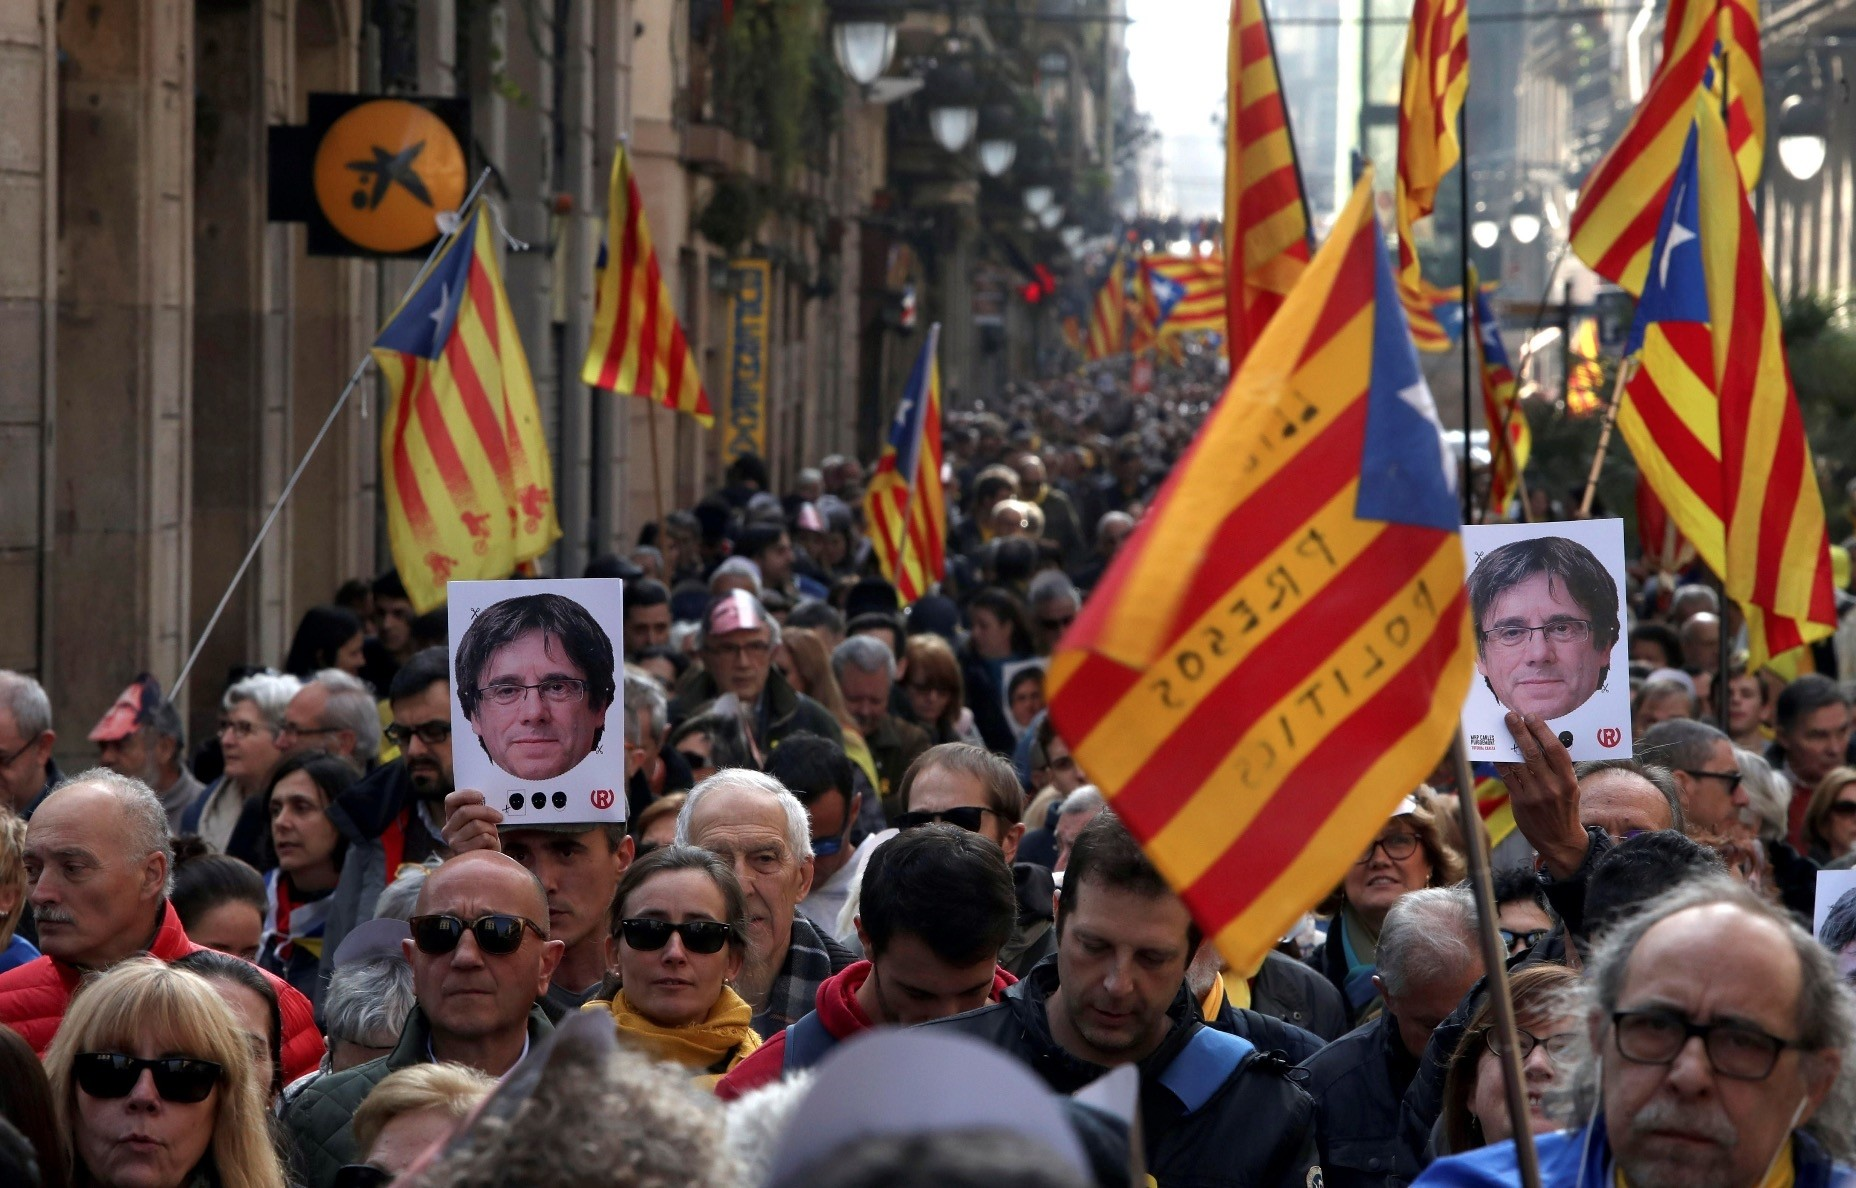 People attend a demonstration in support of former Catalonian President Carles Puigdemont outside the Catalan Parliament, Barcelona, Jan. 30.